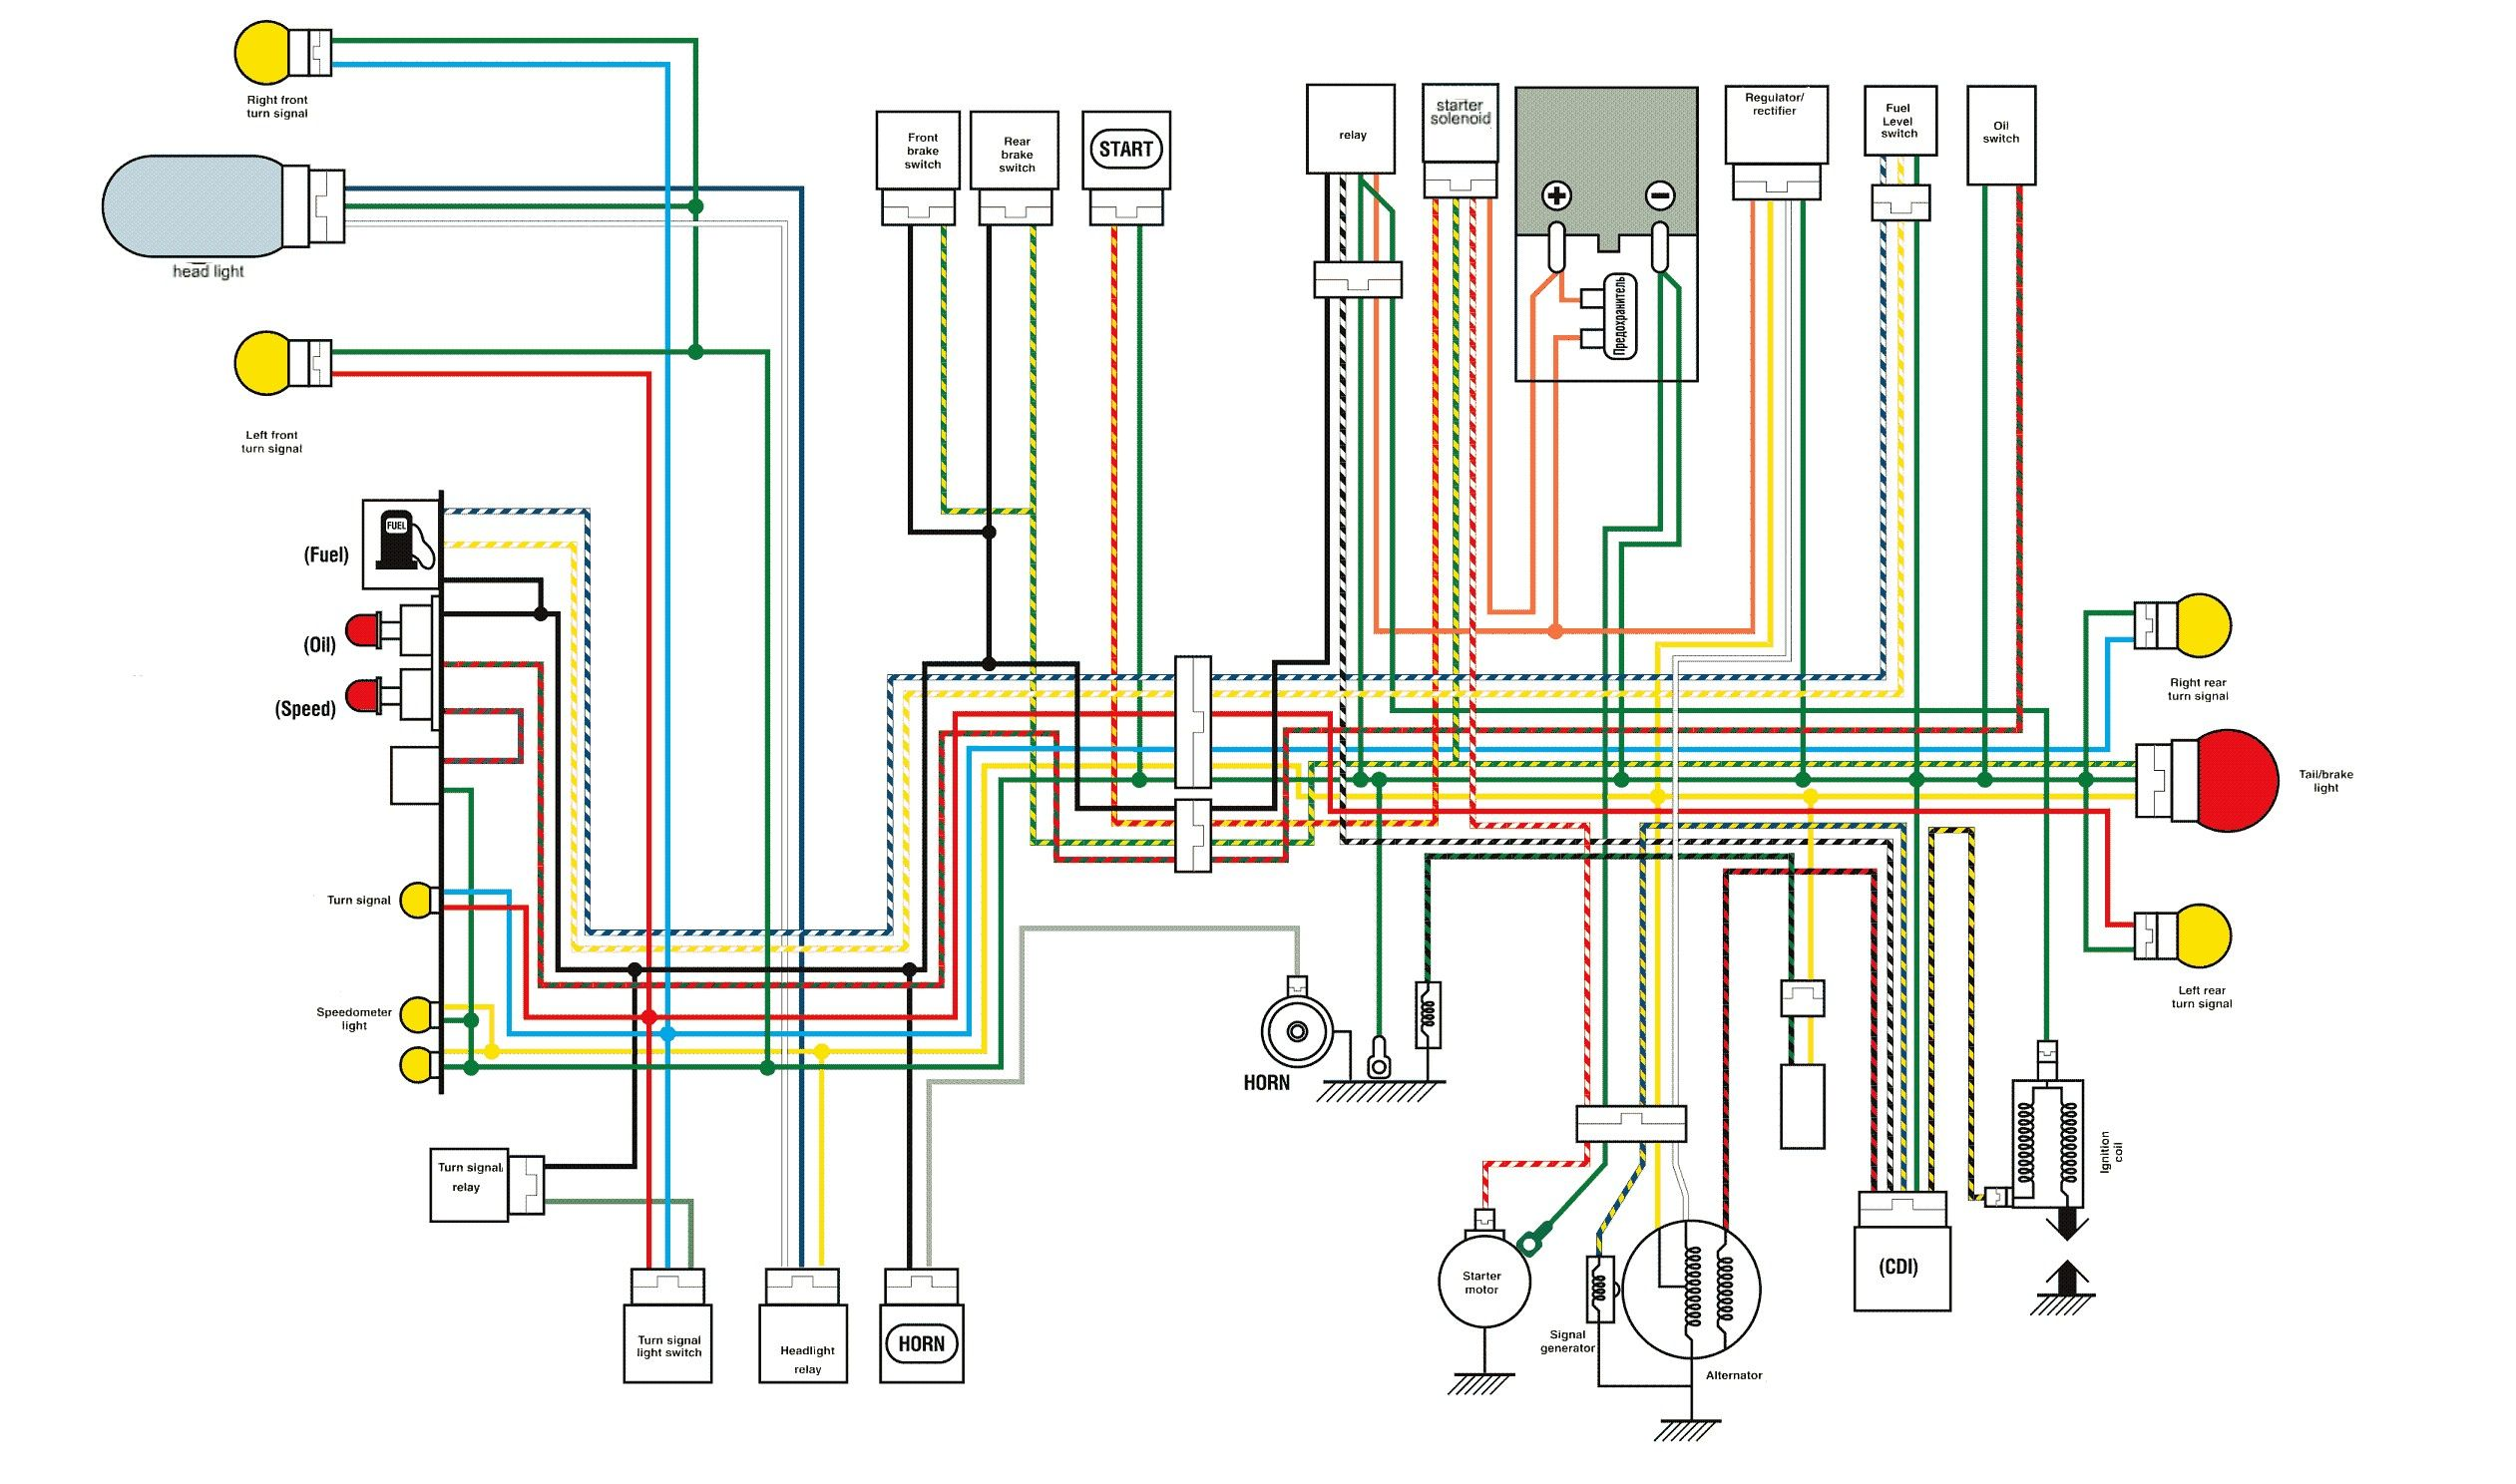 12 Good Wiring Diagram Of Motorcycle Honda Xrm 110 Technique Https Bacamajalah Com 12 Good W Electrical Wiring Diagram Electrical Diagram Honda Motorcycles